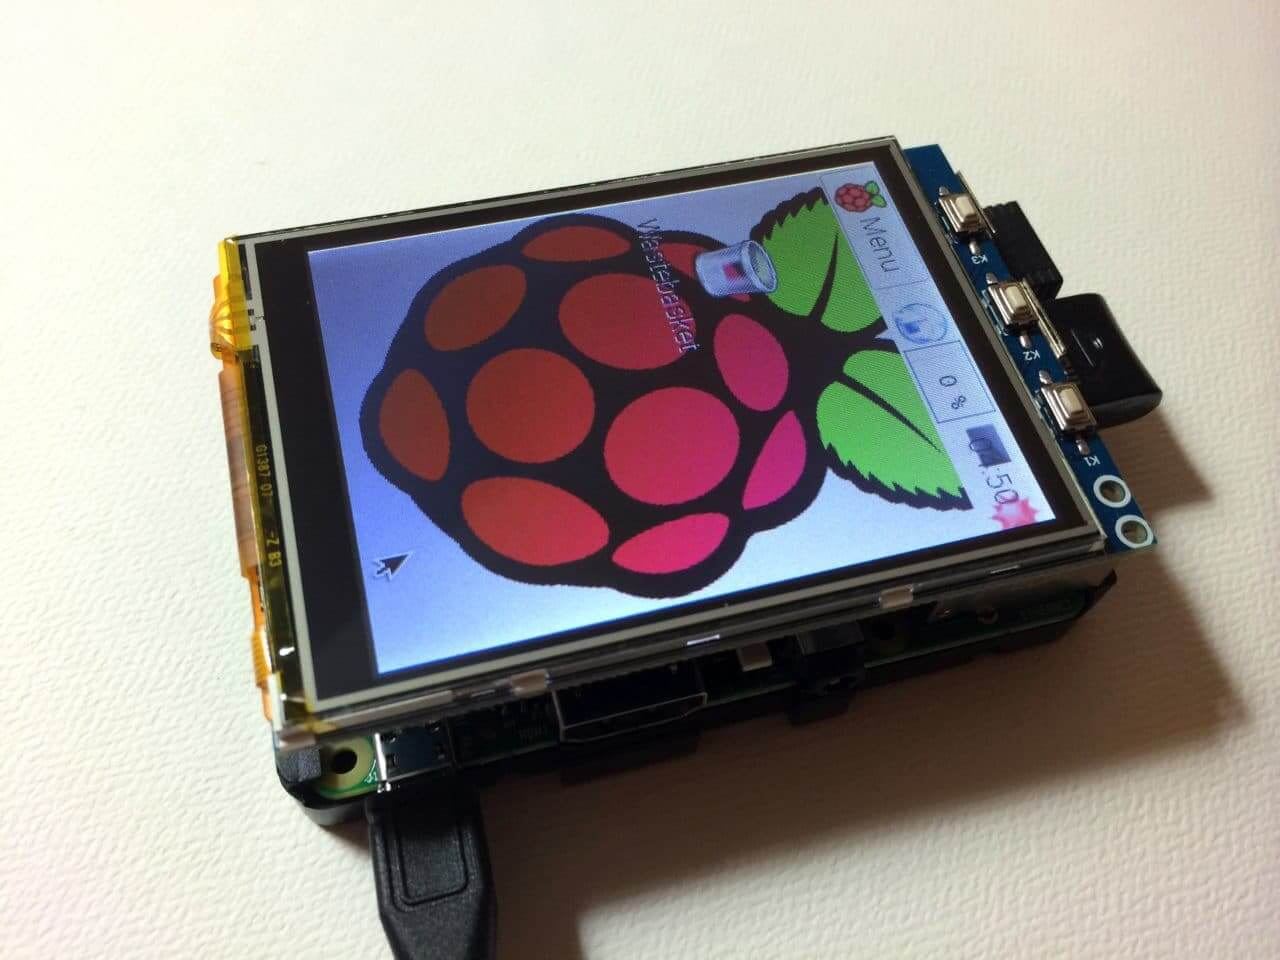 How To Set Up The Dht11 Humidity Sensor On Raspberry Pi Wiringpi Pin Numbers B Setup An Lcd Touchscreen